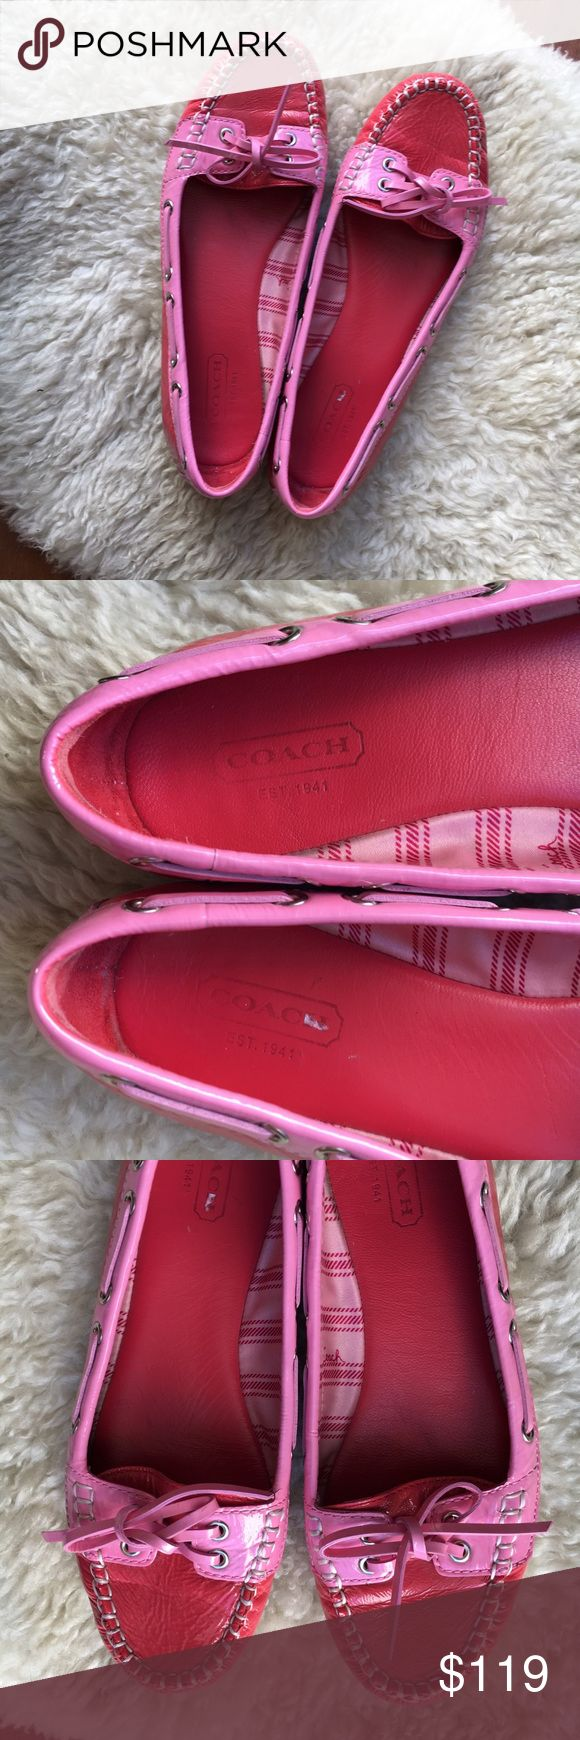 {Coach} Percy Boat Shoe Loafers 6 Like new! Barely worn and practically mint condition. Bright red and pink dock shoes or loafers. So comfortable, classic, cool and just plain chic. Patent leather style glossy leather. Fits true to size. So adorable and perfect Summer flat! Genuine and authentic! Offers warmly welcomed! Coach Shoes Flats & Loafers